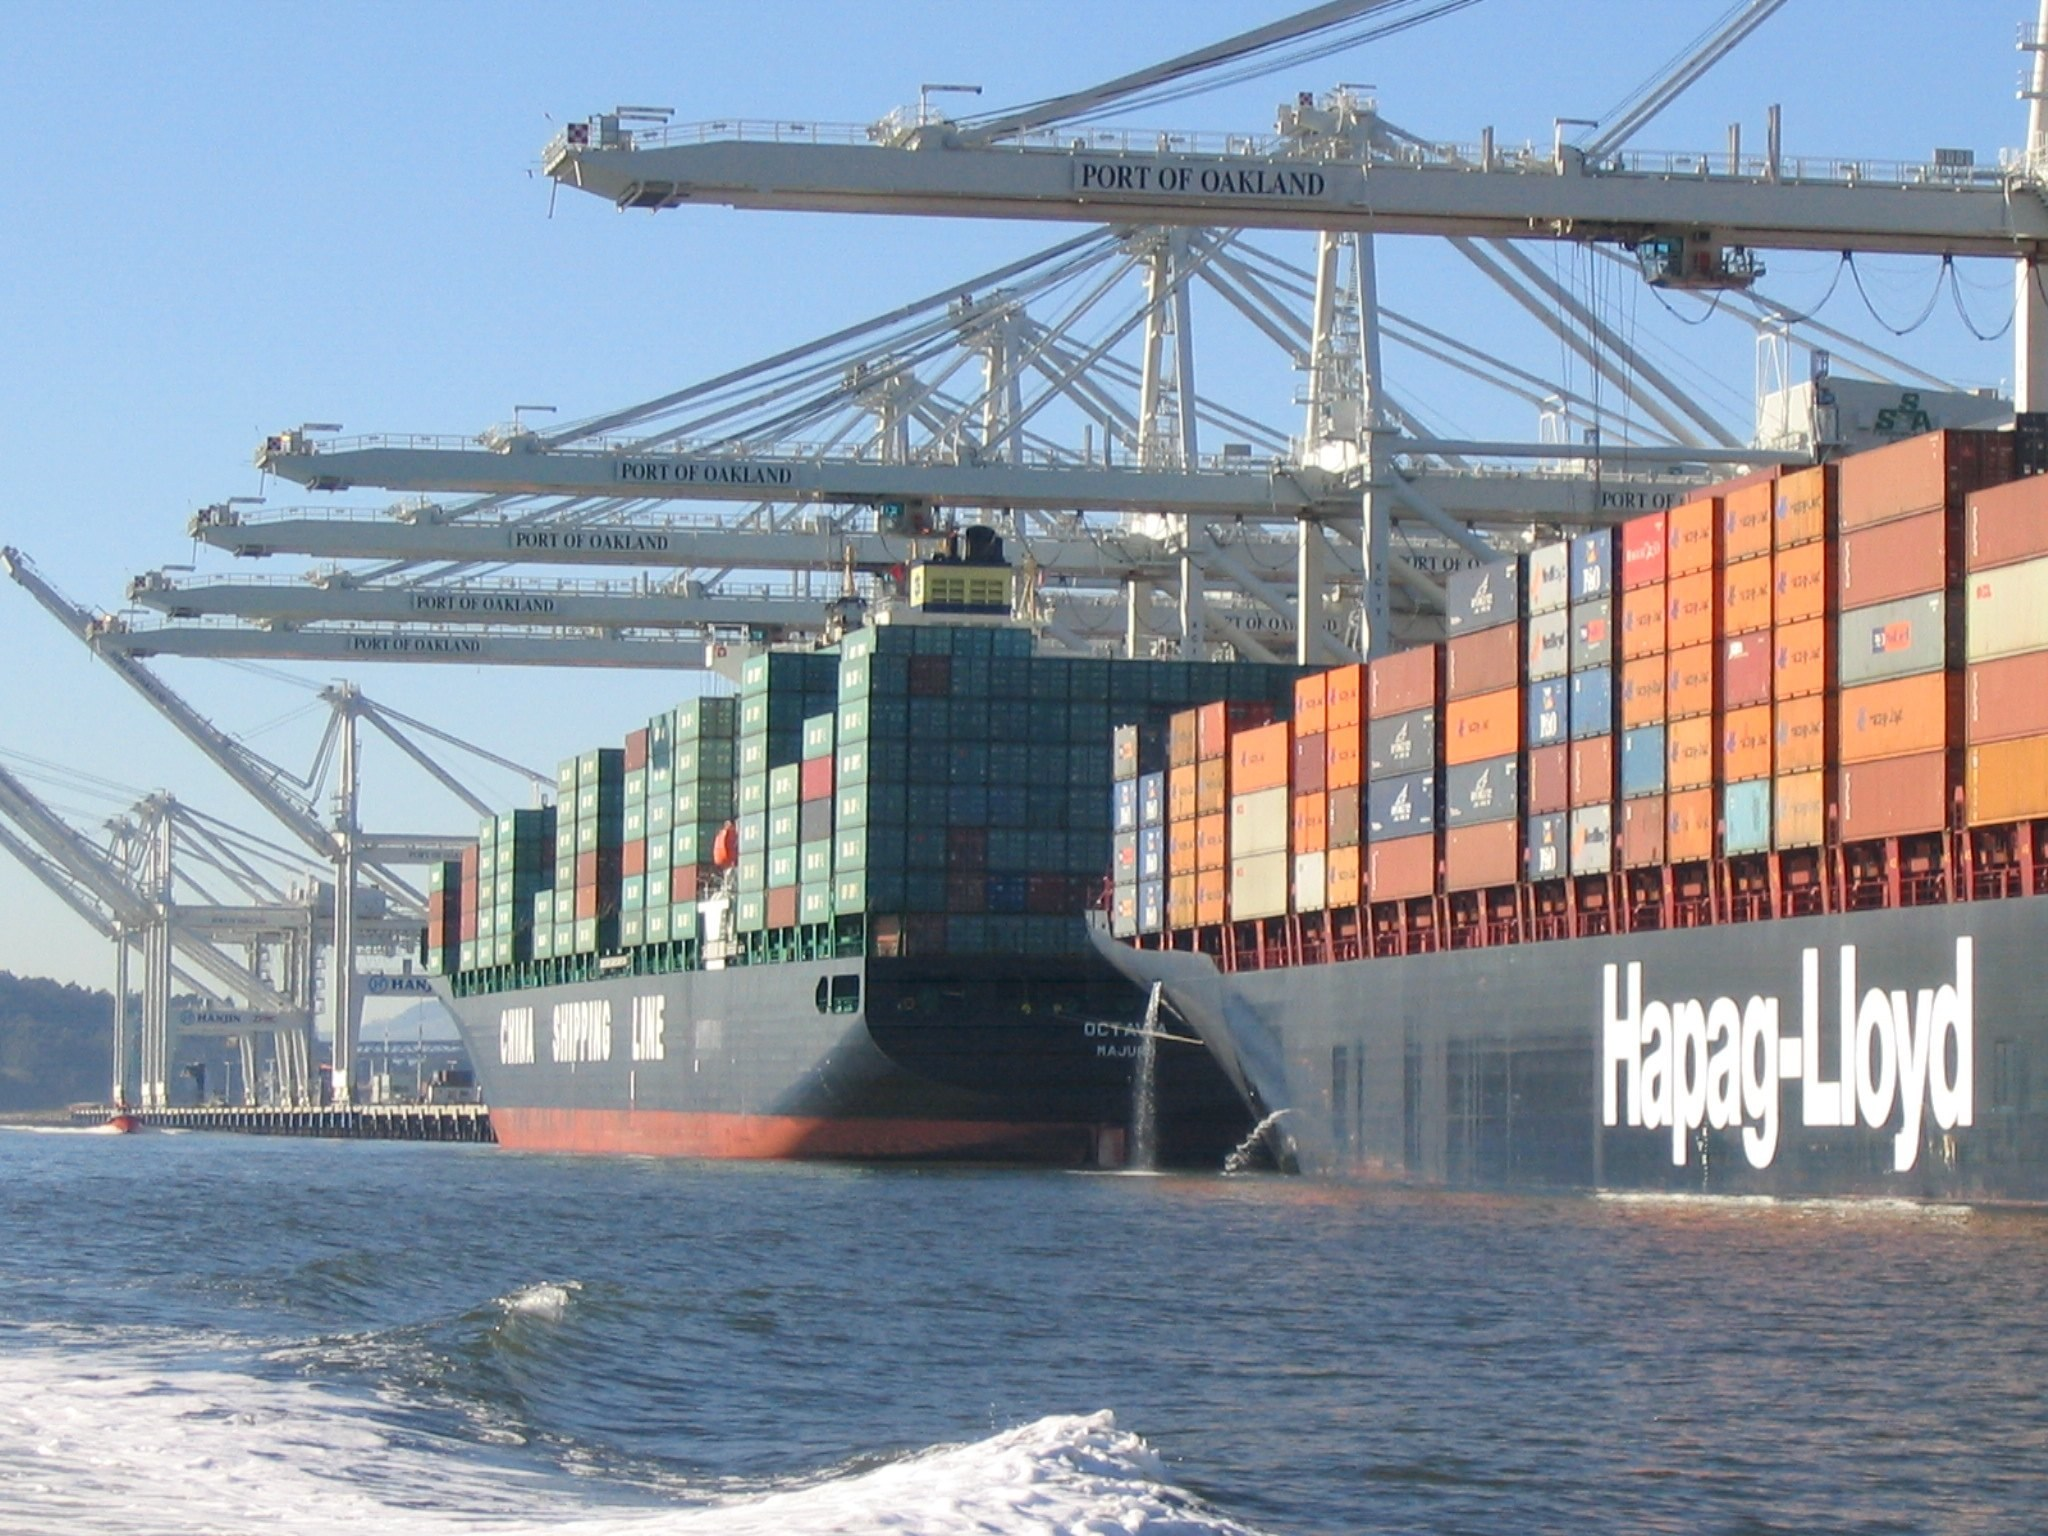 Large container ships at port, discharging ballast water in the Port of Oakland<div class='credit'><strong>Credit:</strong> Large container ships at port, discharging ballast water in the Port of Oakland</div>